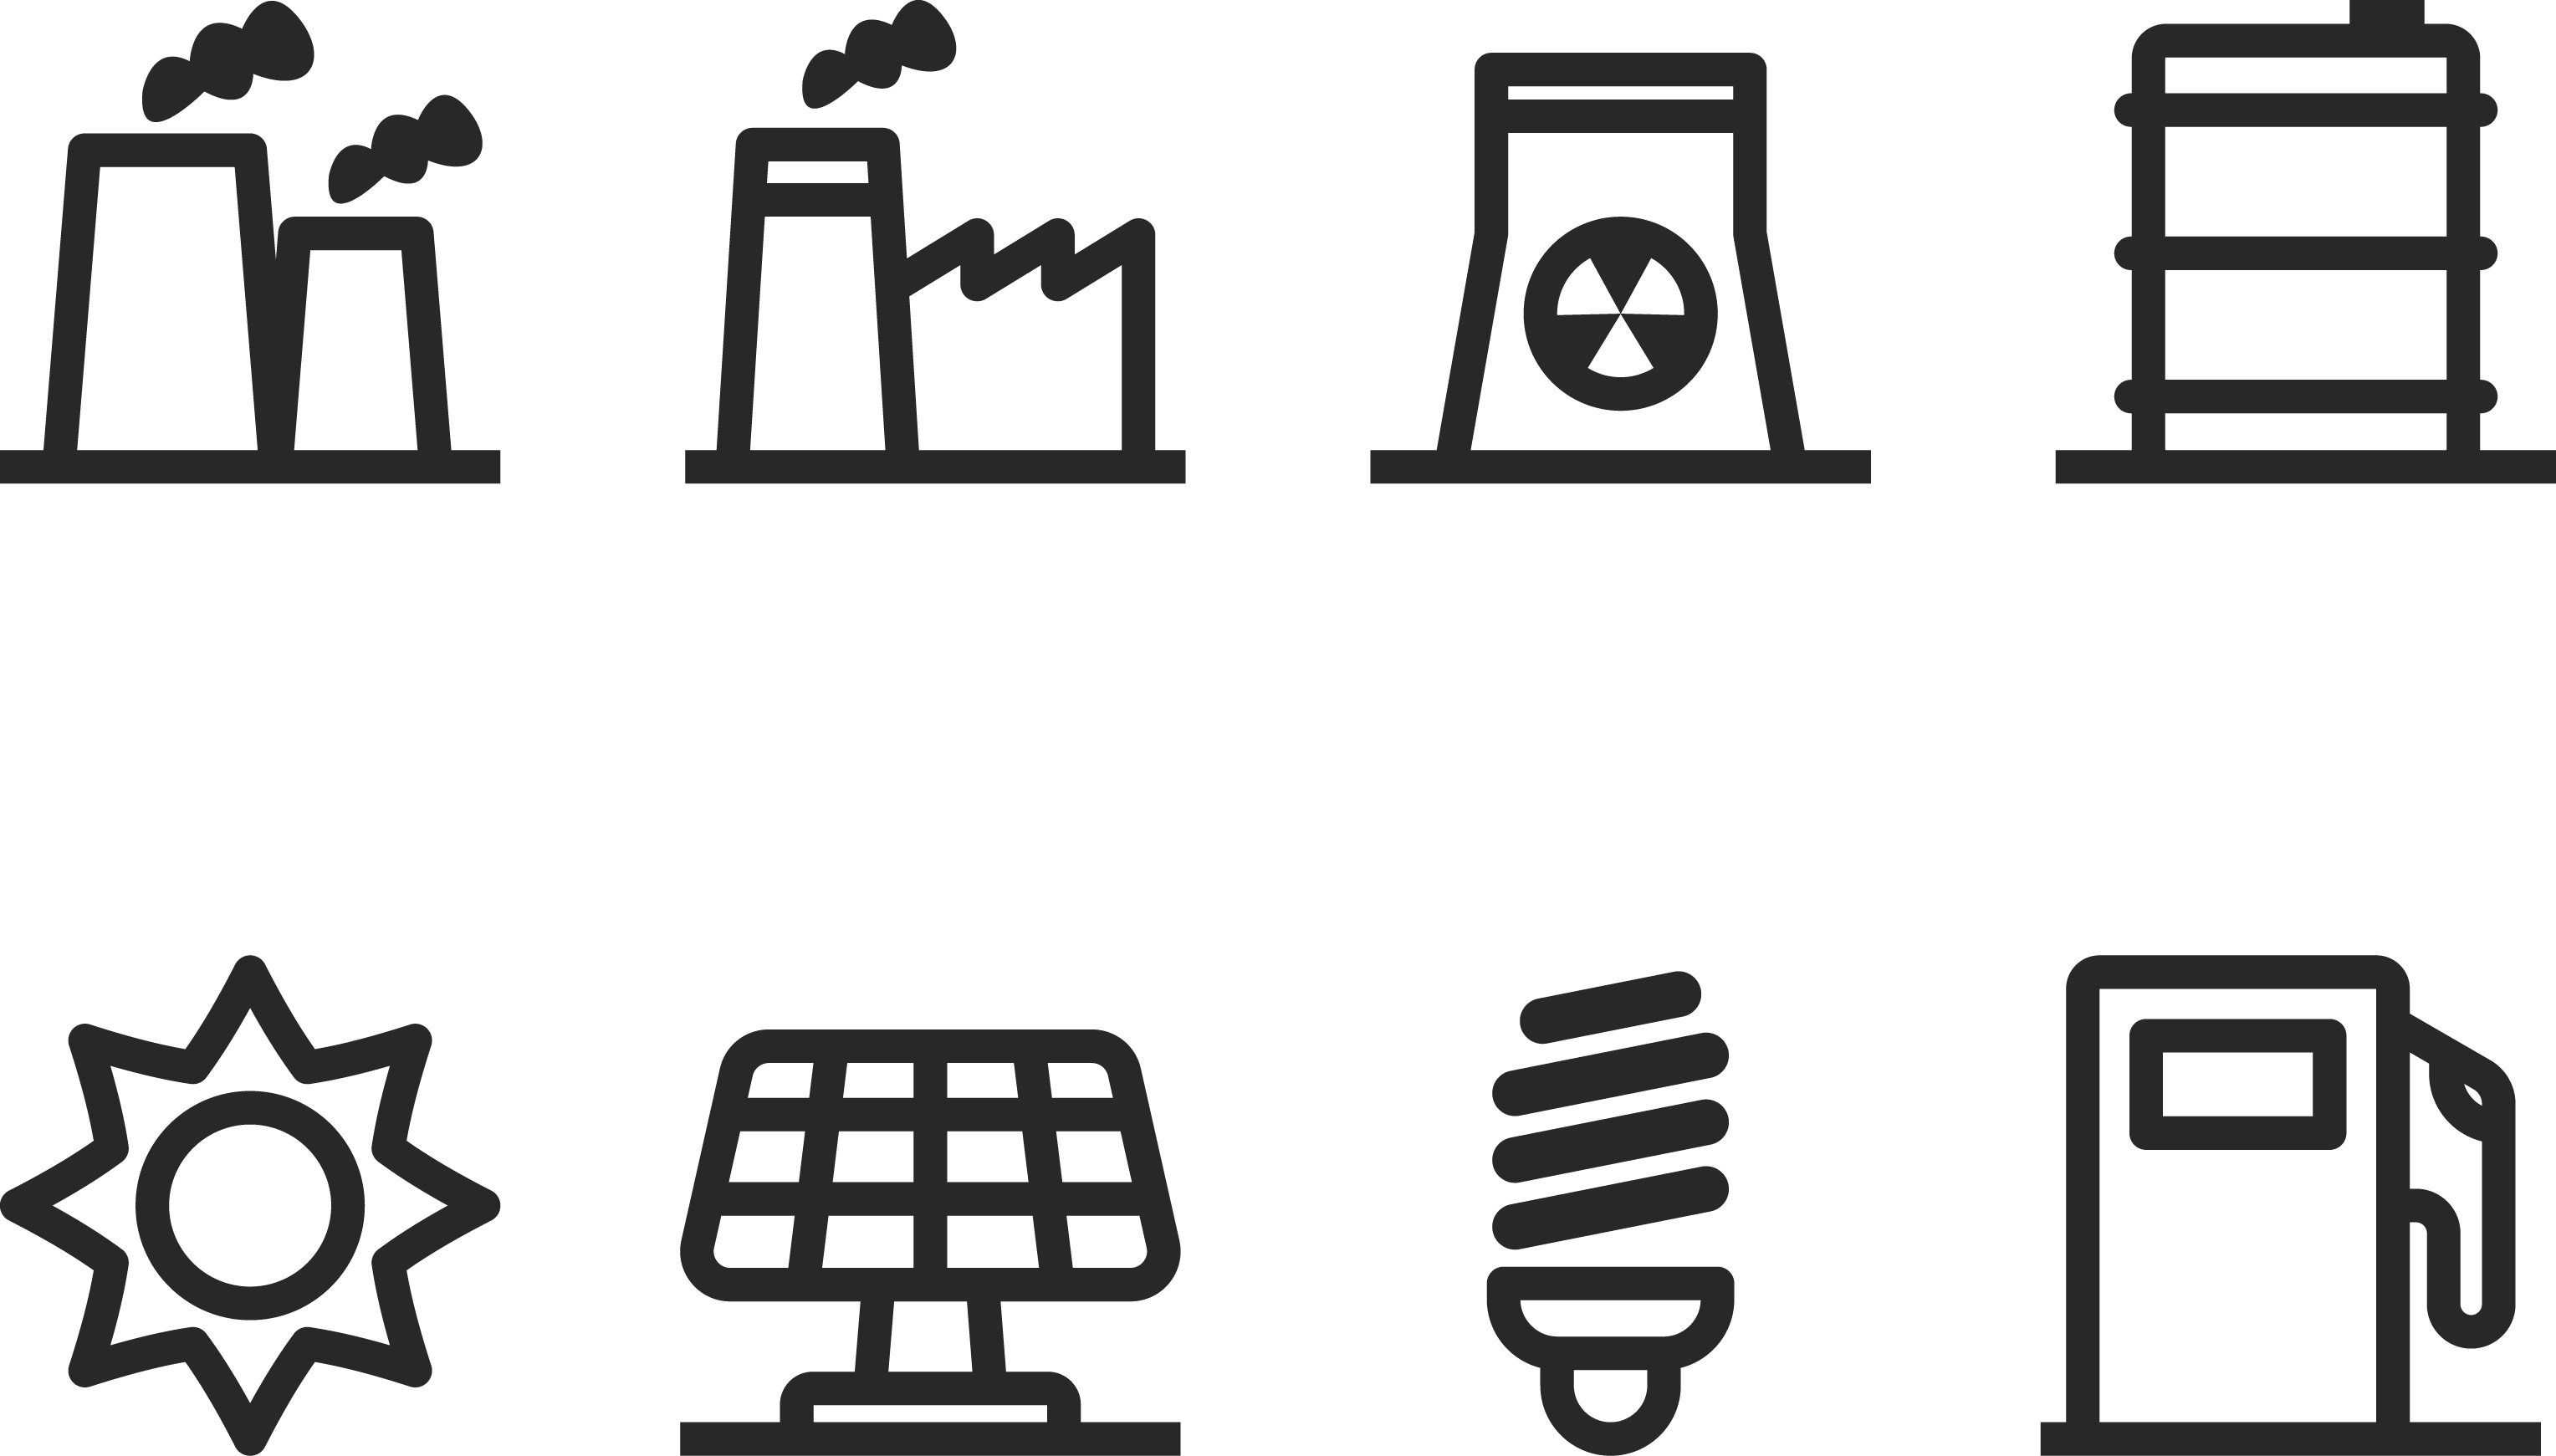 Technology factory chimney gas. Industry clipart industrial revolution